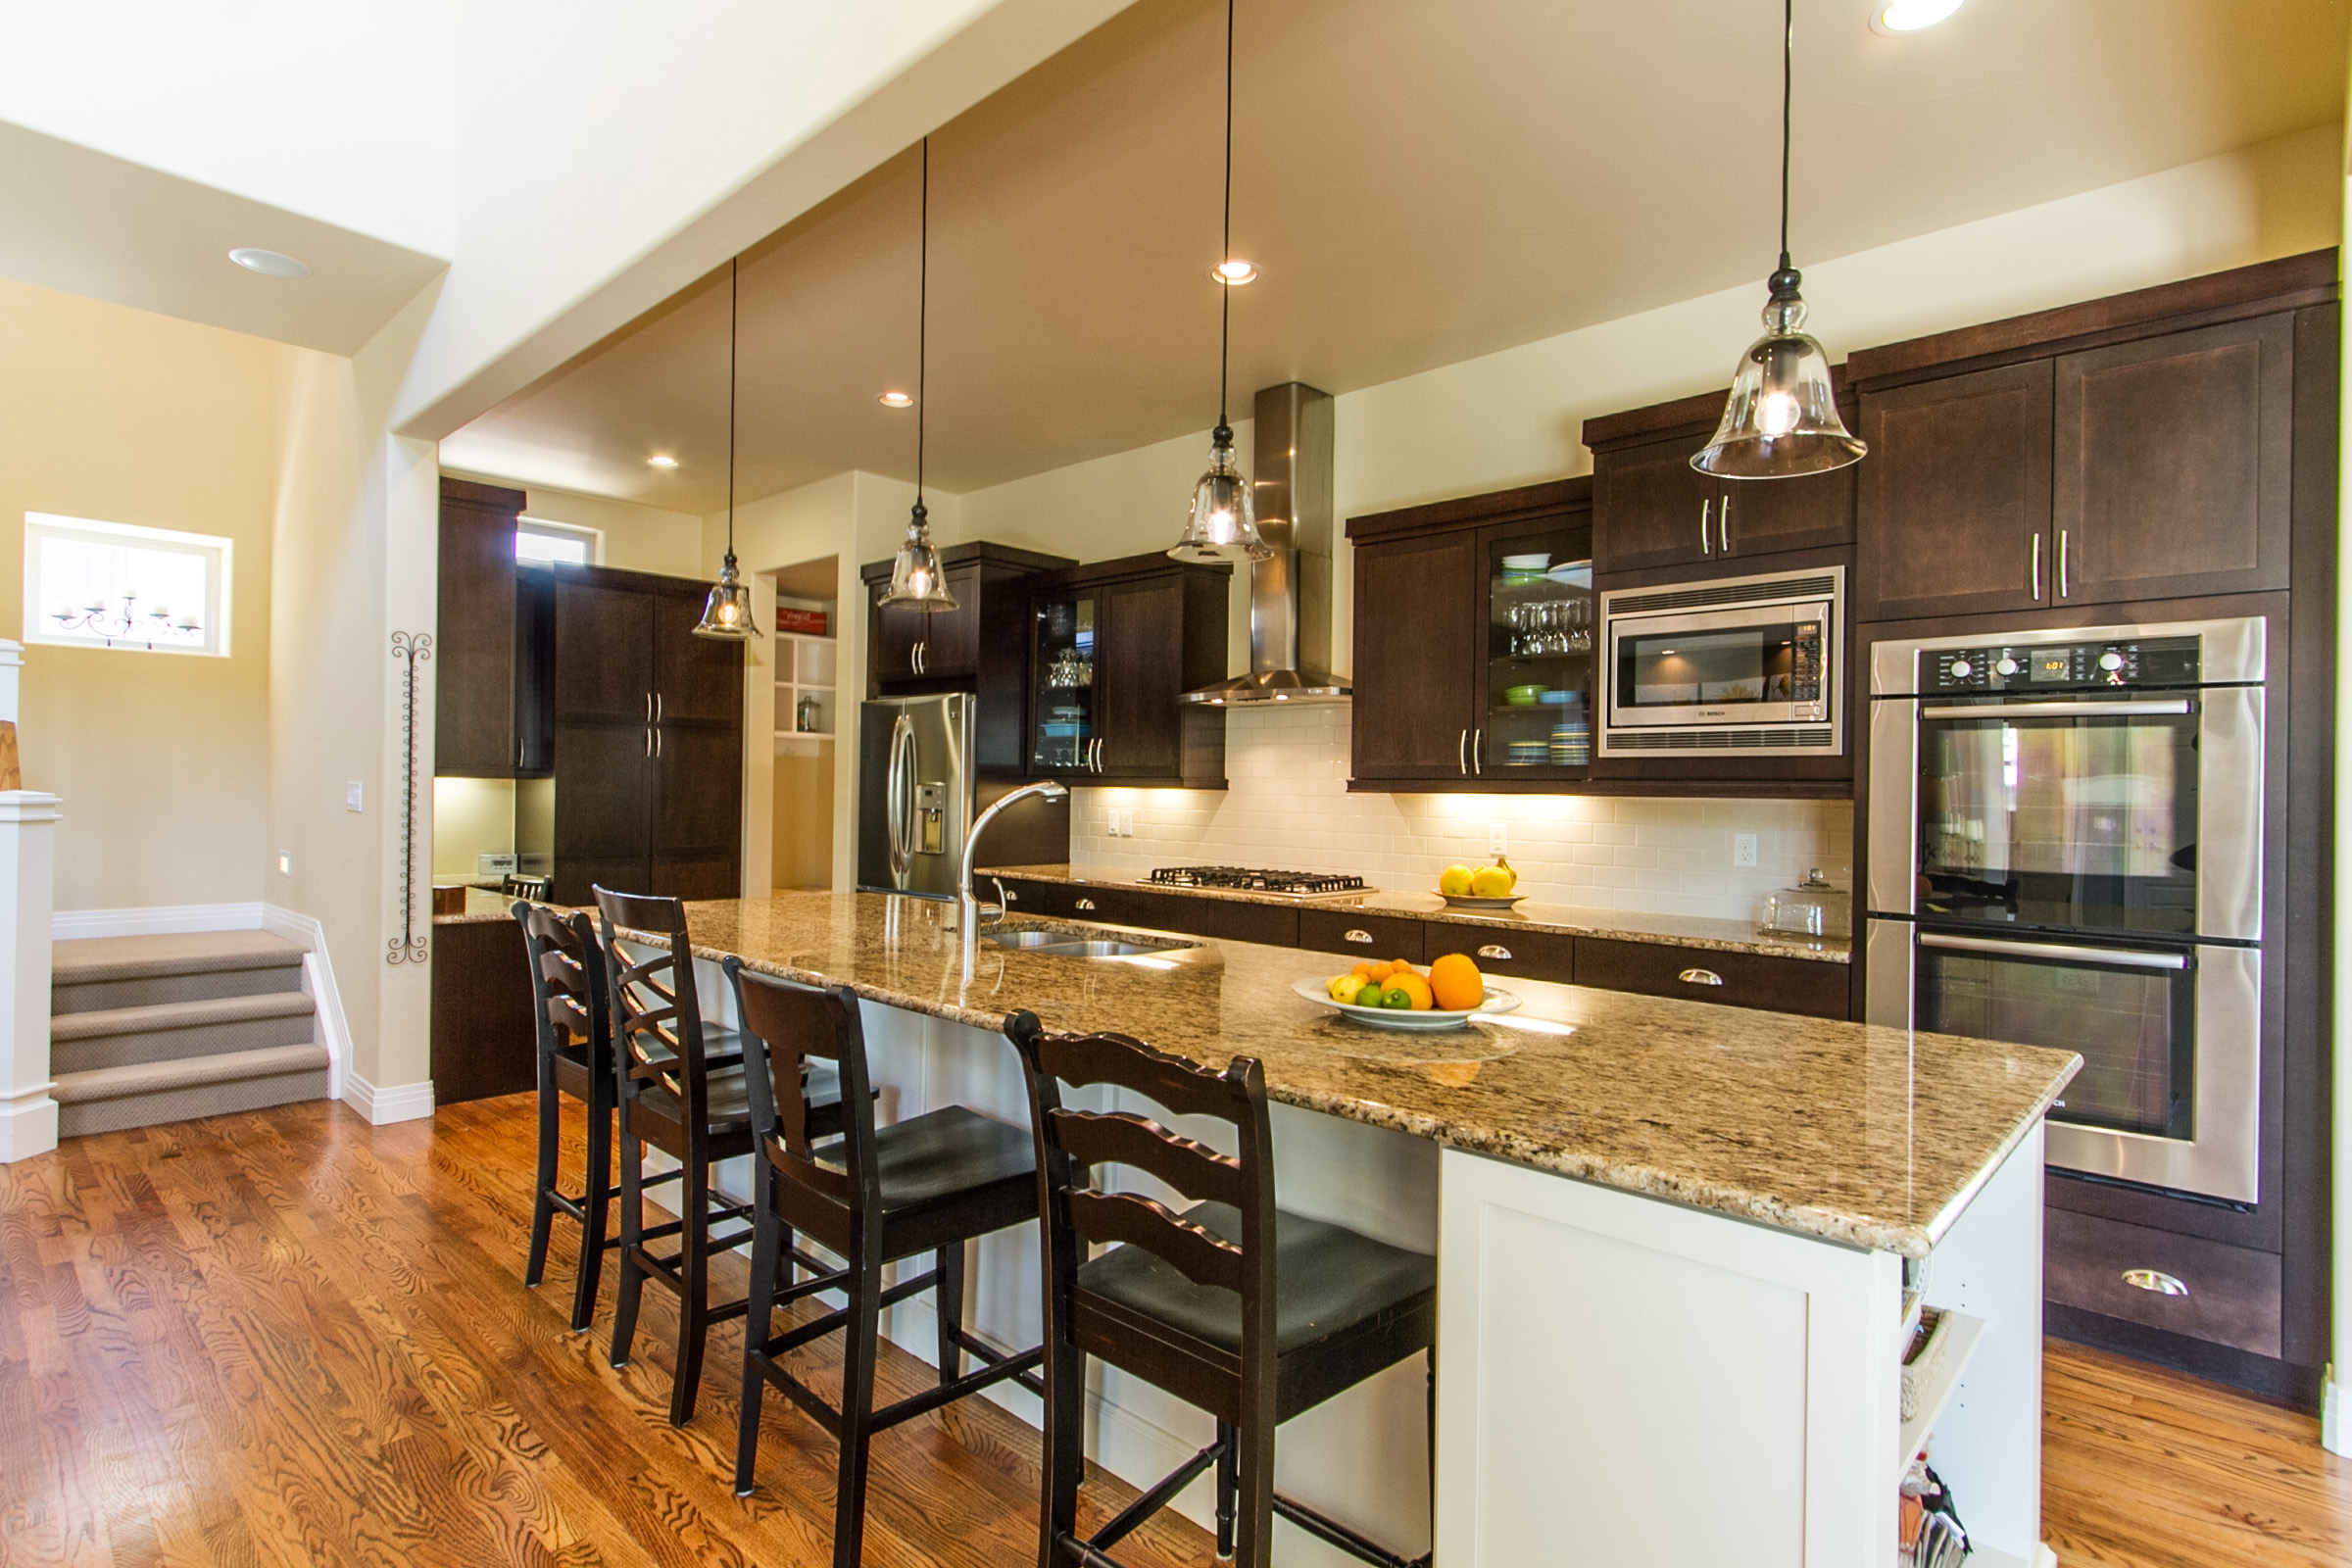 1307006_Open-Plan-Kitchen_high.jpg